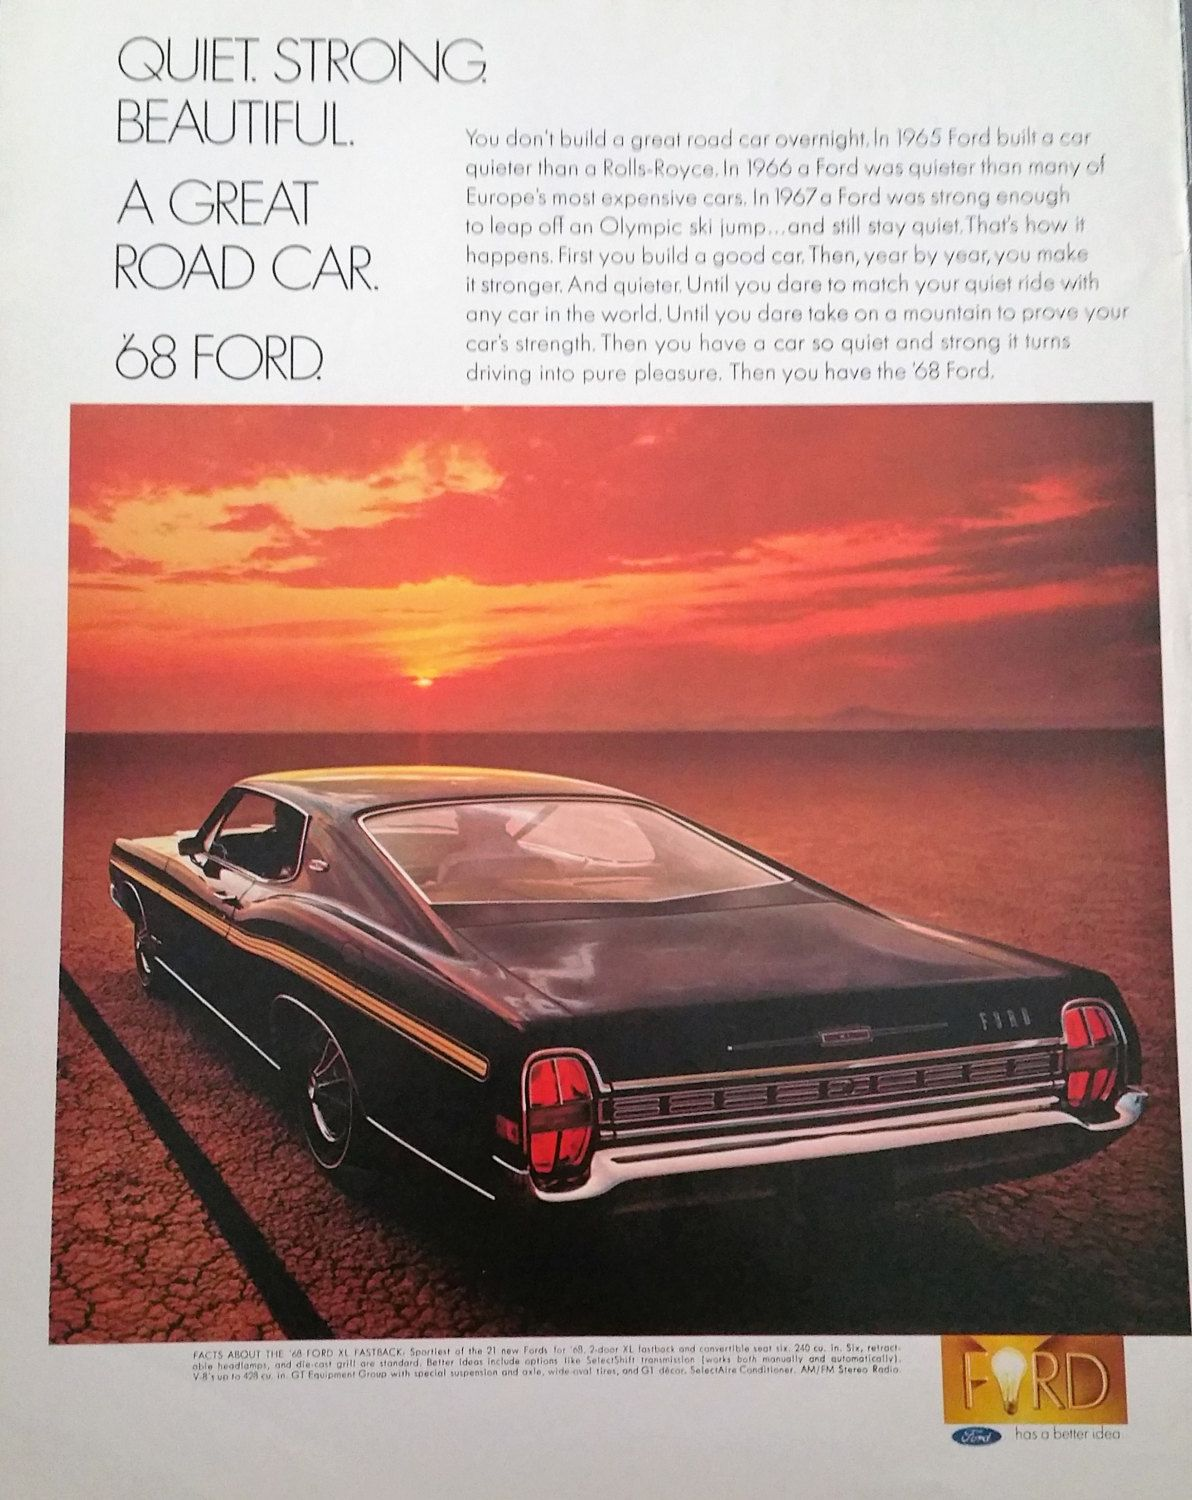 1968 Ford Torino Magazine Advertisement - Ford Ads, Old Car Ads, Print Ads, Vintage Cars, Car Advertising, Vintage Ads, Magazine Ads by Inkart on Etsy